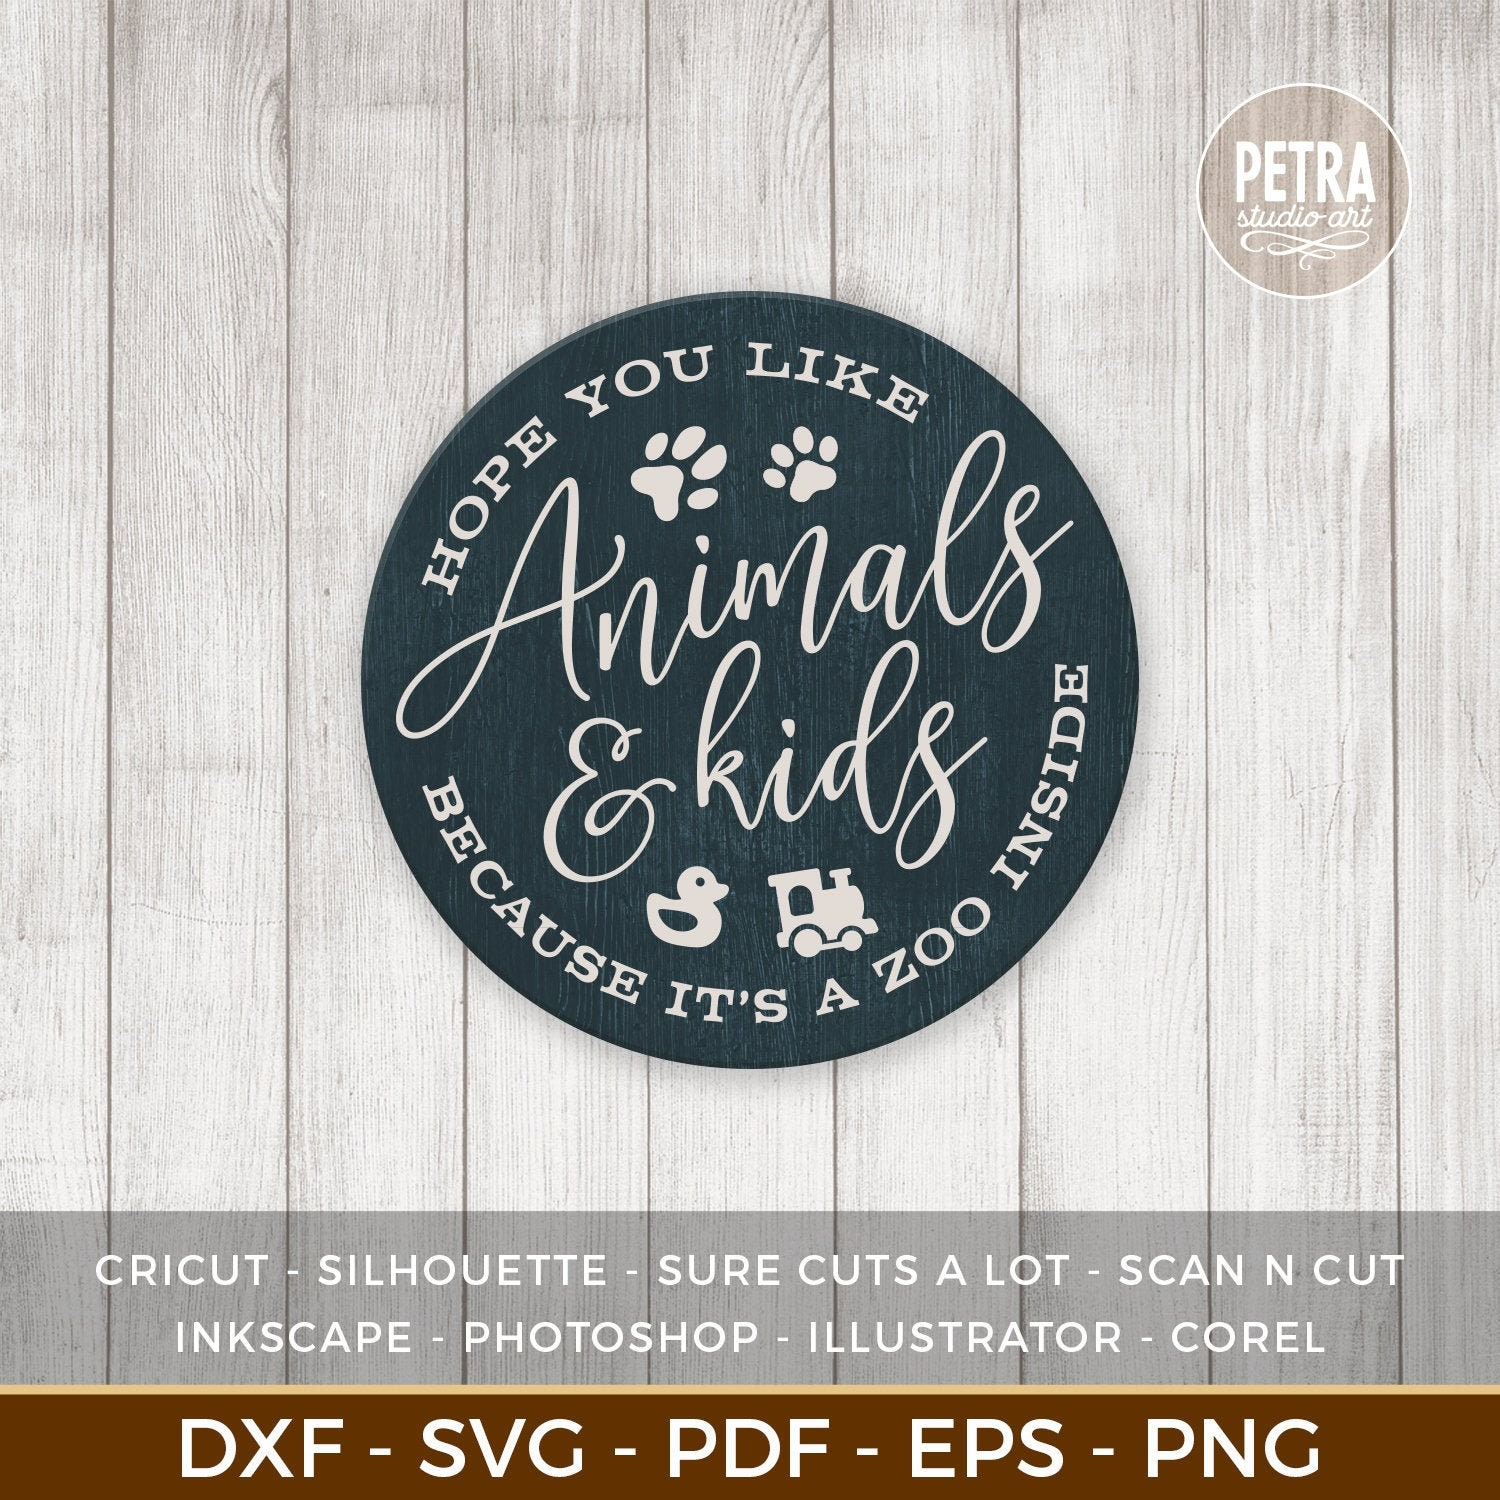 rustic home svg Instant Download You /& Me and the kids Farmhouse svg and png 4 file types Files for Cutting Machines or Printable